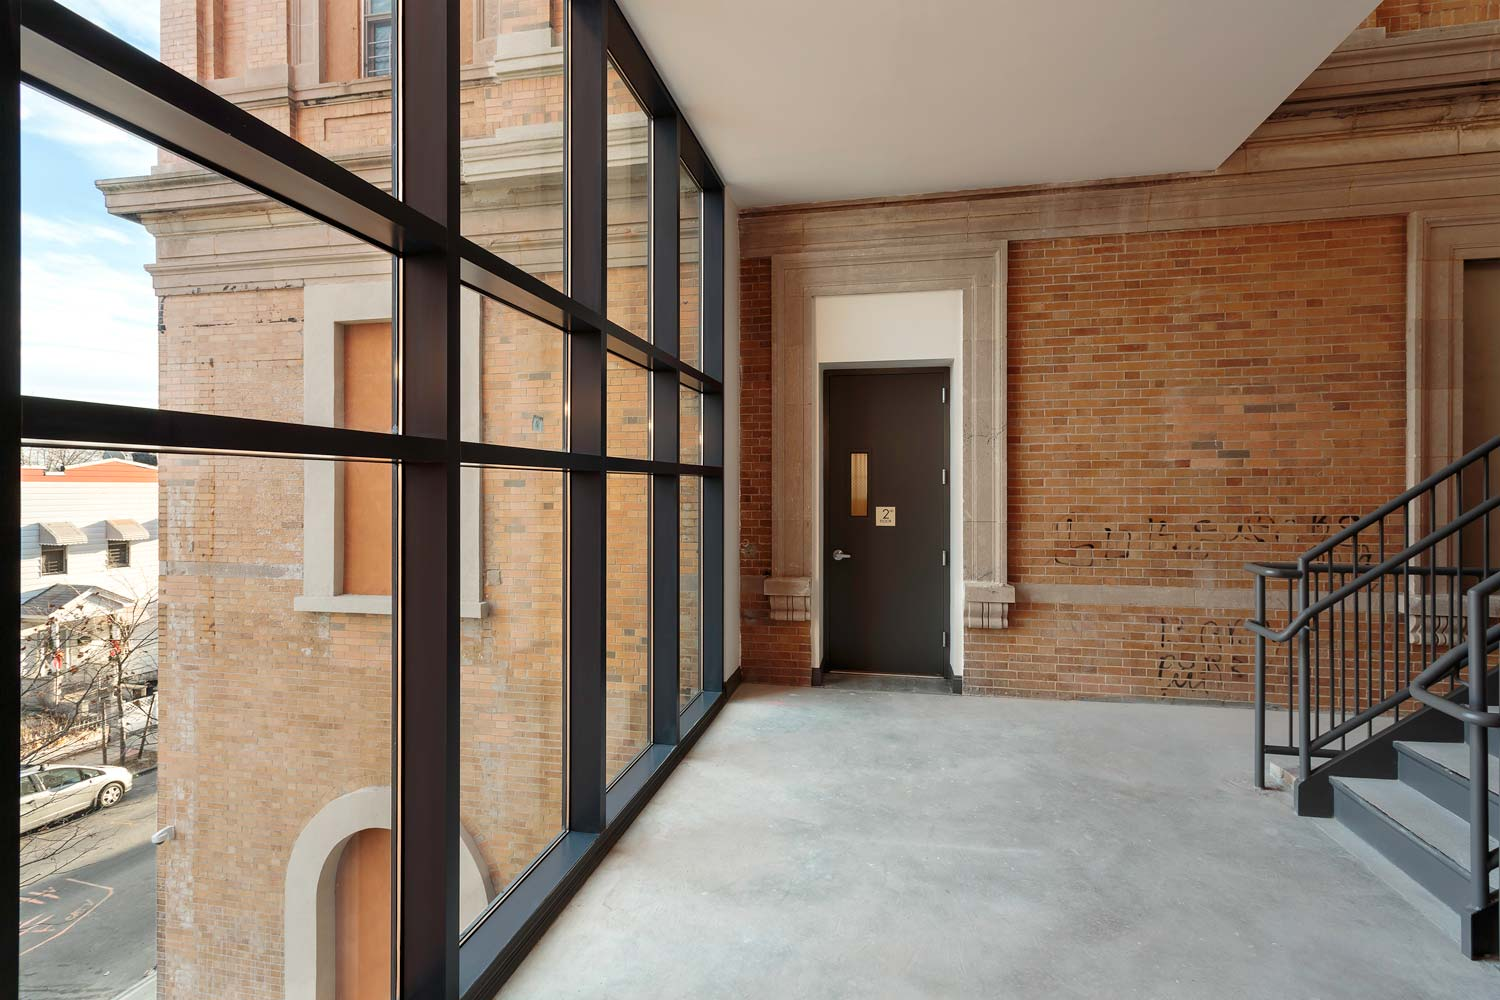 Our Lady of Lourdes Apartments combines rehabilitation, adaptive reuse, and new construction.